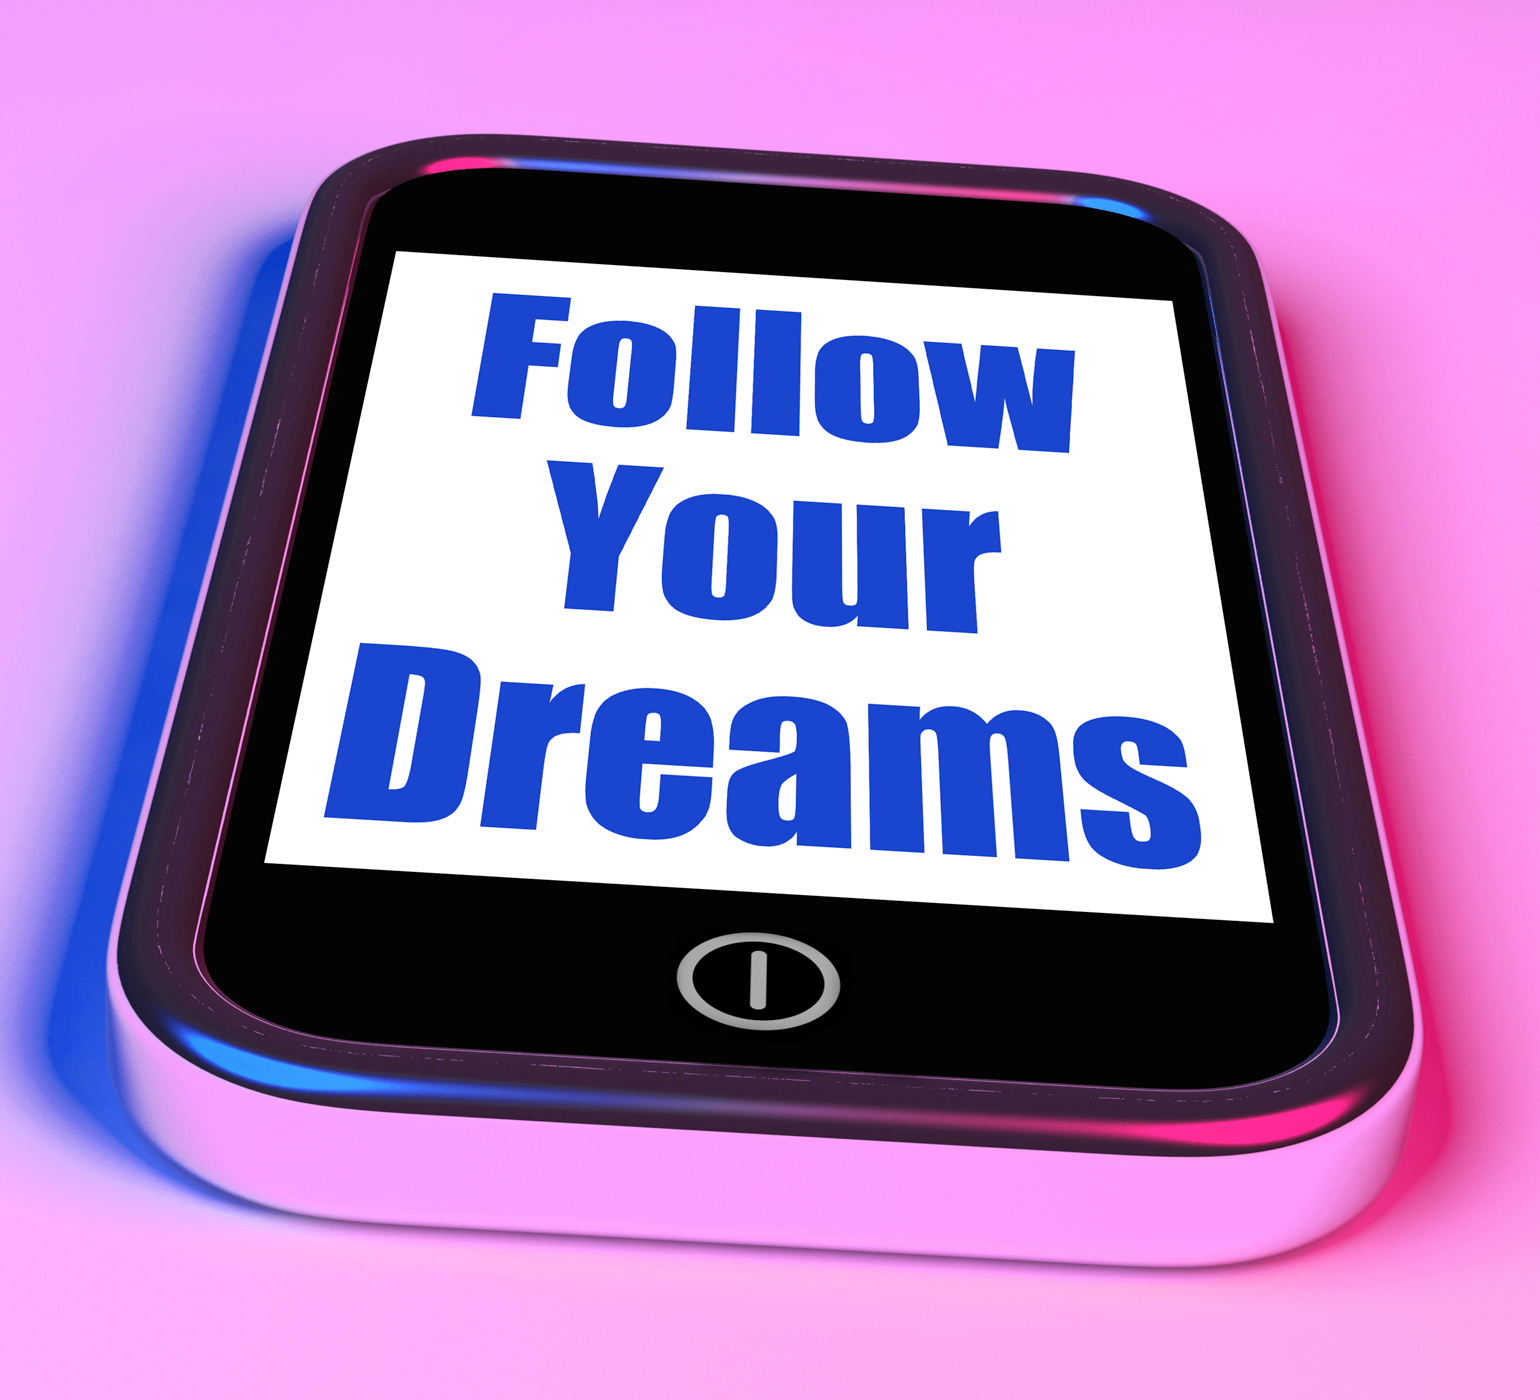 Follow Your Dreams On Phone Means Ambition Desire Future Dream, internet, inspire, imagine, hope, HQ Photo